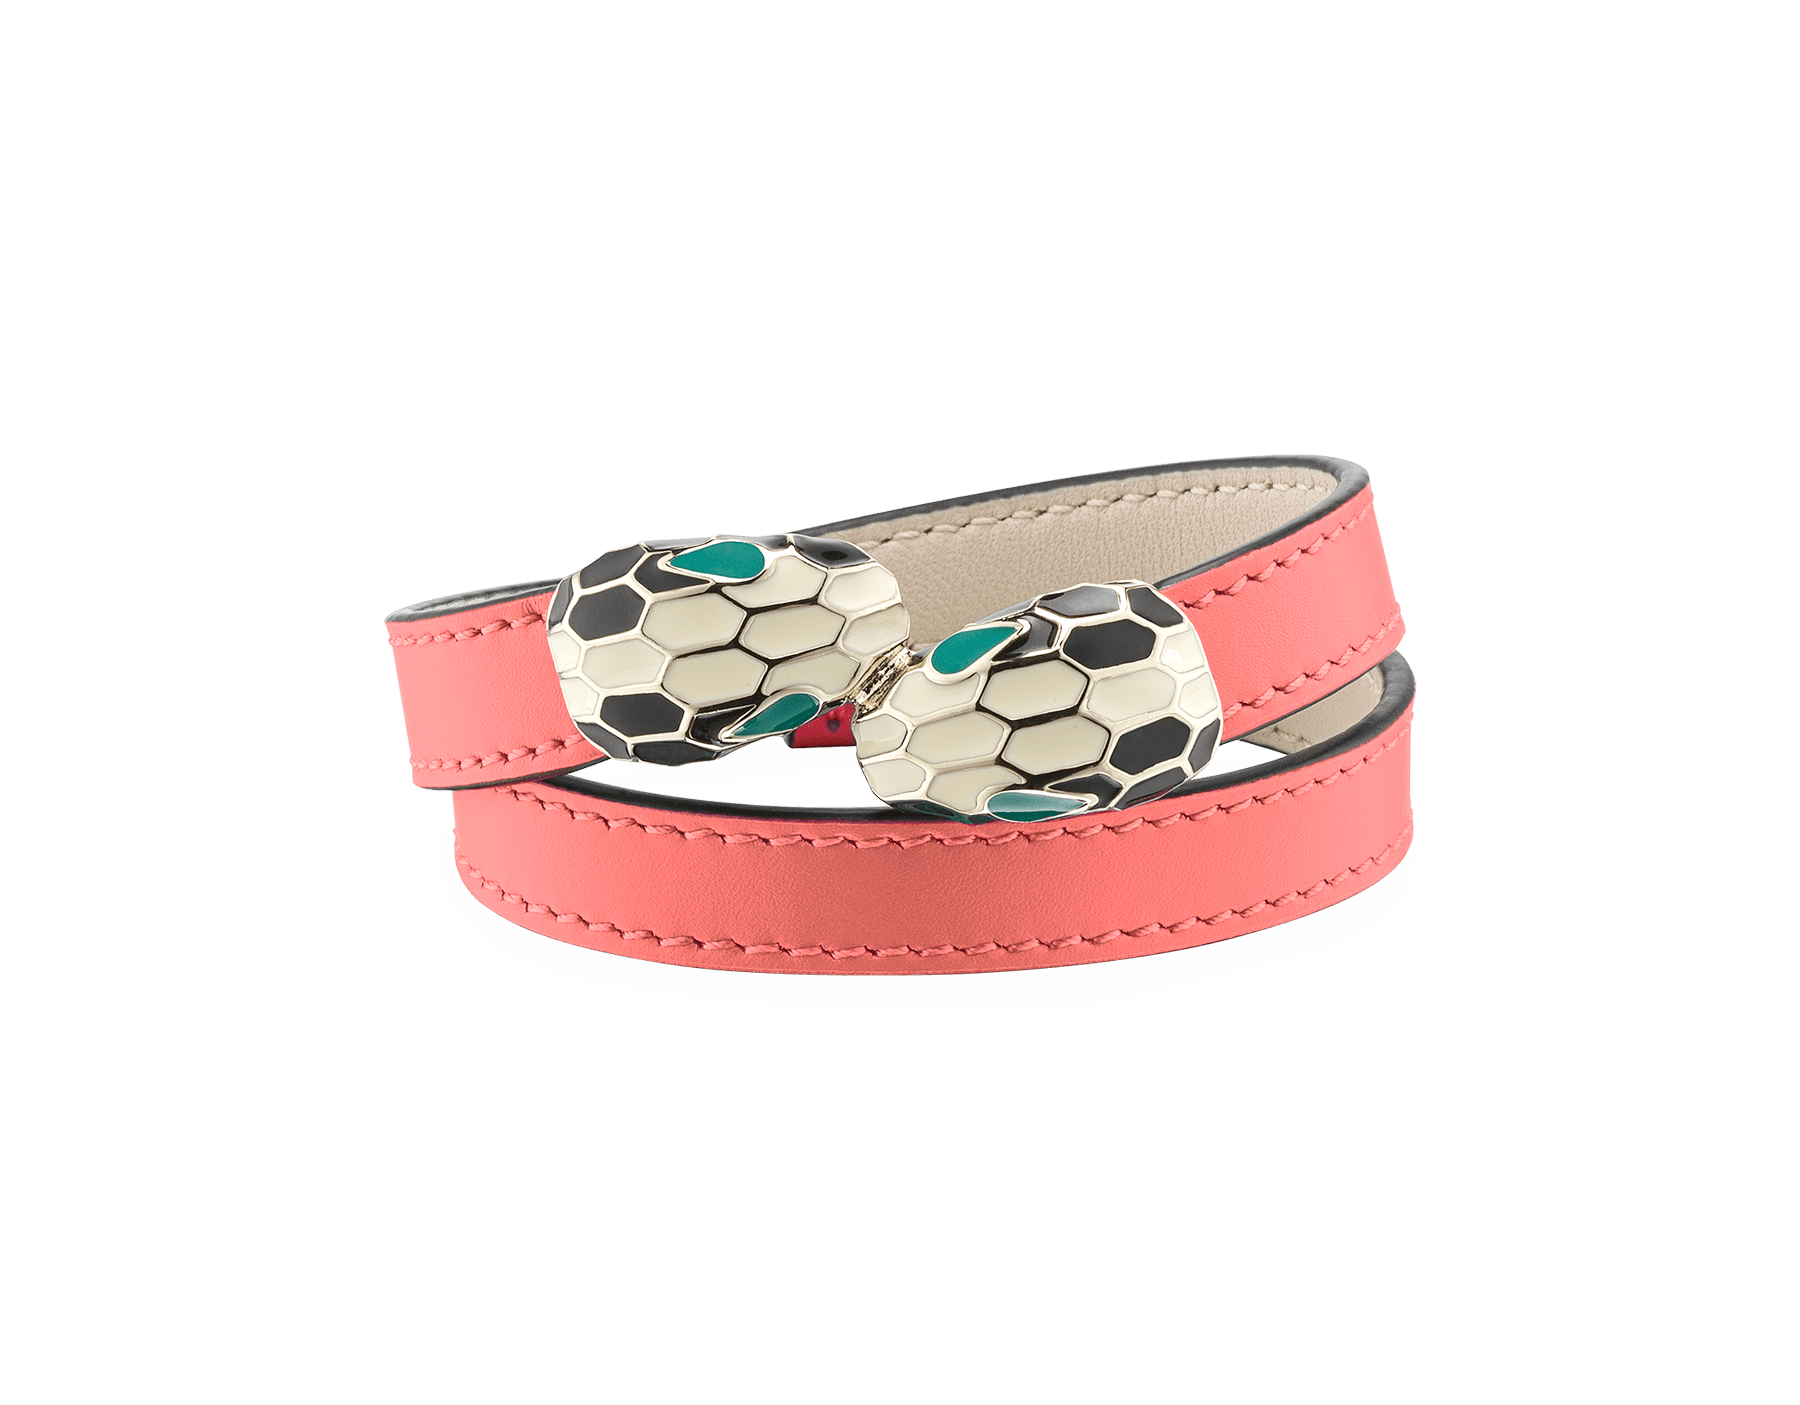 Serpenti Forever multi-coiled bracelet in silky coral calf leather, with light gold plated brass hardware. Iconic contraire snake head décor in black and white enamel, with green enamel eyes. 289189 image 1